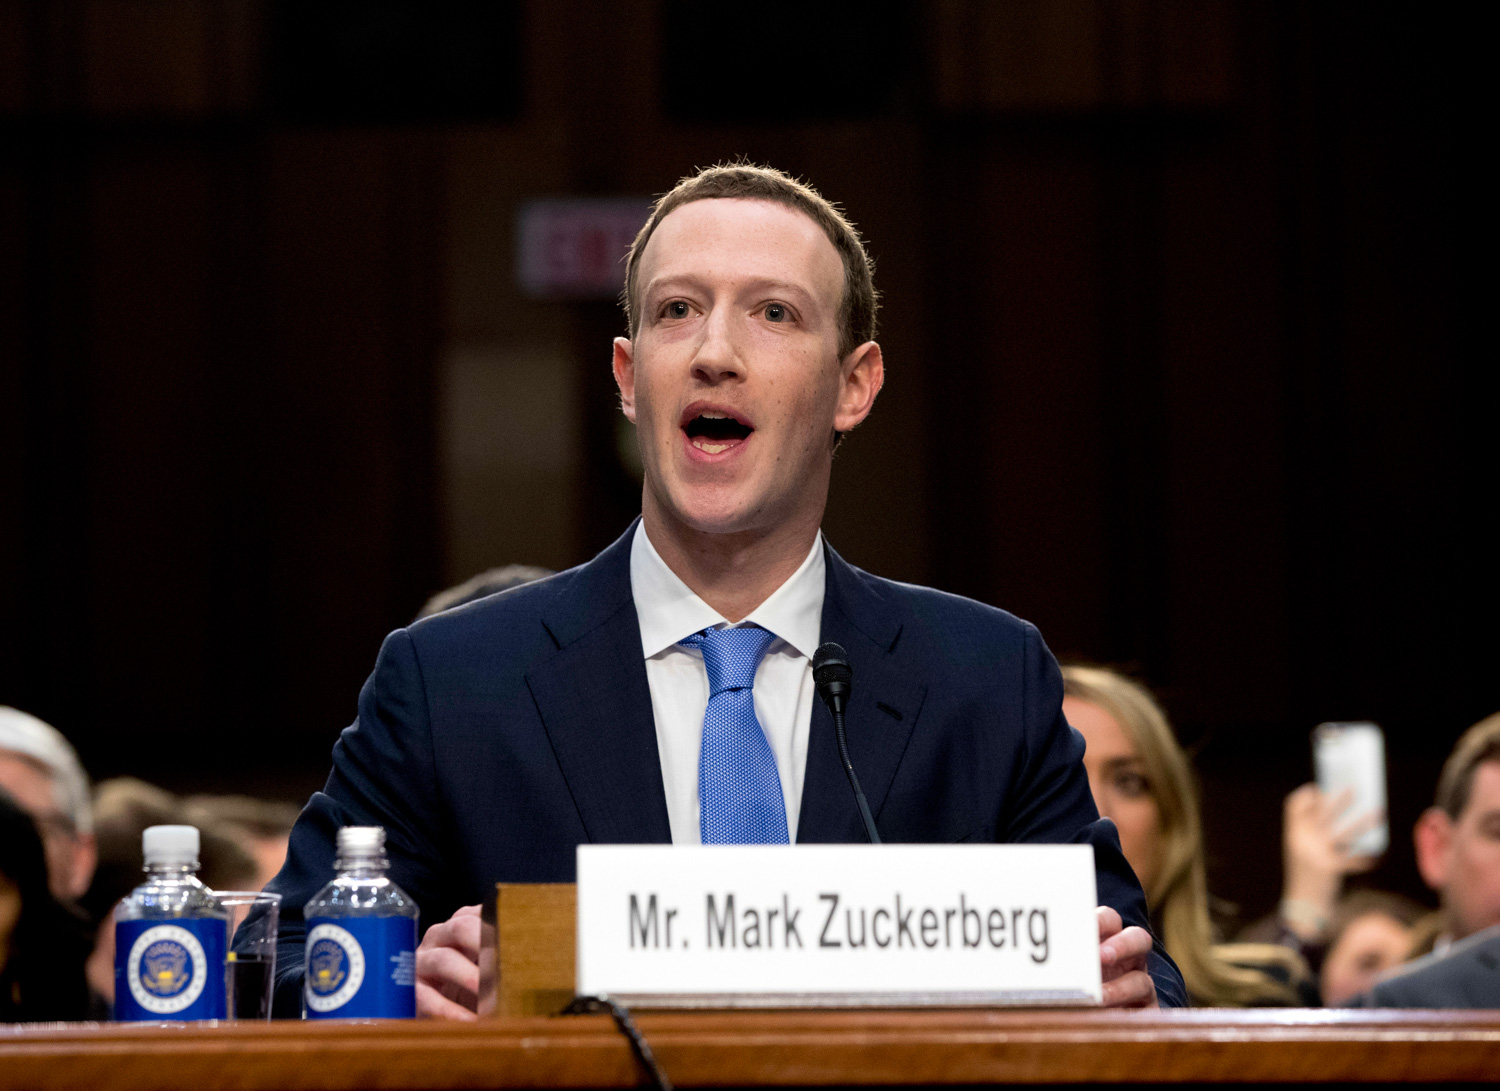 "<div class=""meta image-caption""><div class=""origin-logo origin-image none""><span>none</span></div><span class=""caption-text"">Facebook CEO Mark Zuckerberg testifies before a joint hearing of the Commerce and Judiciary Committees on Capitol Hill in Washington. (Andrew Harnik/AP Photo)</span></div>"